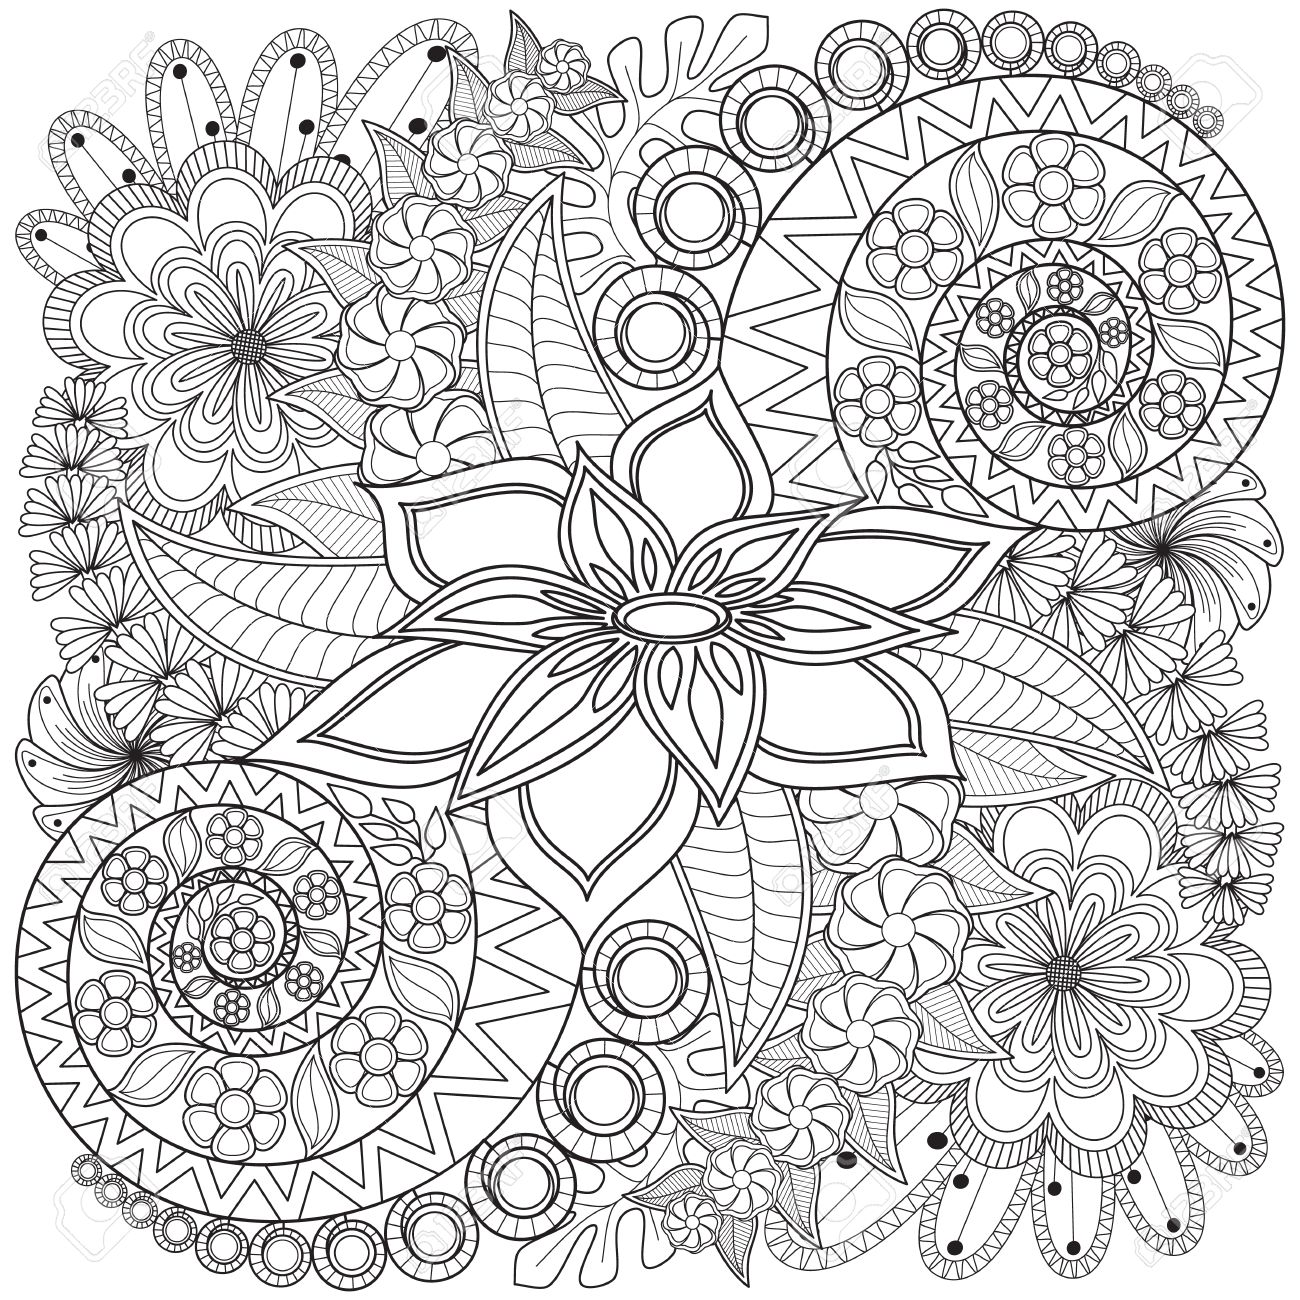 Uncategorized Swirl Coloring Pages flower swirl coloring page pattern very detailed background texture stock vector 51066844